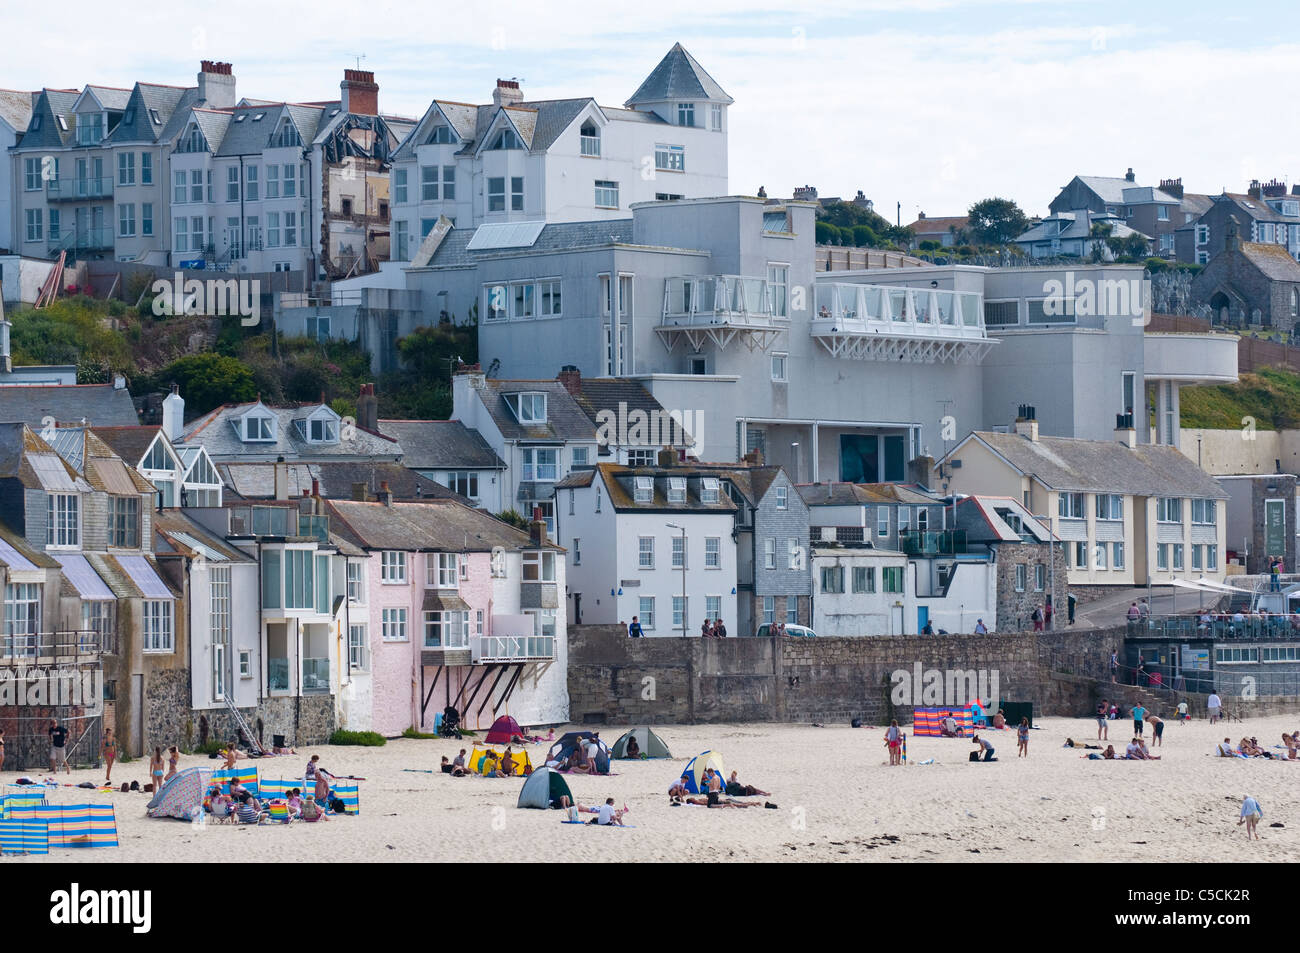 The Tate at St Ives - regional art gallery overlooking Porthmeor Beach, Cornwall. UK Stock Photo